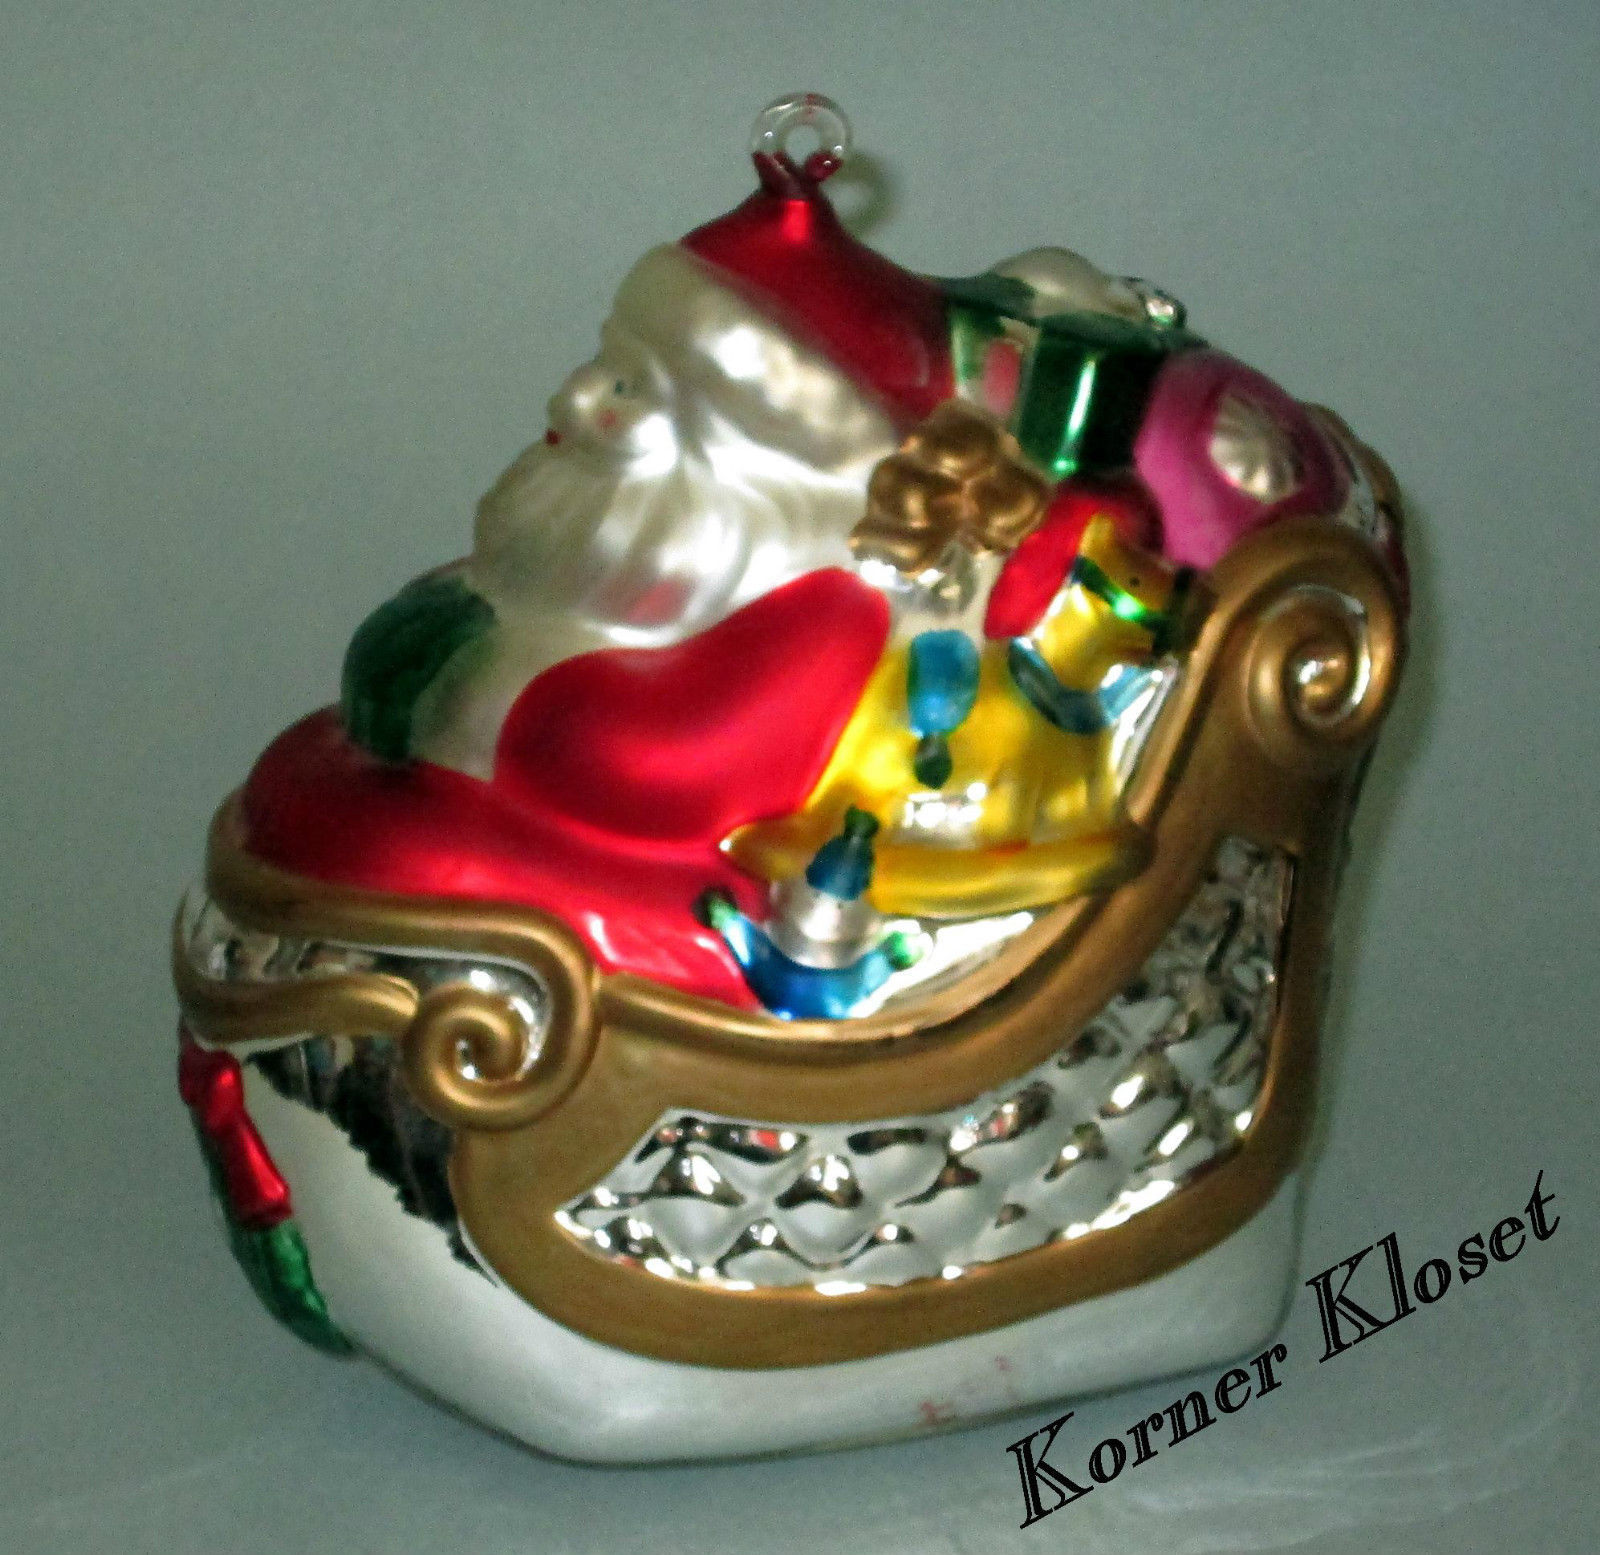 Primary image for Department 56 Mercury Glass Santa in Sleigh Ornament 1996 - Dept 56 - MIB